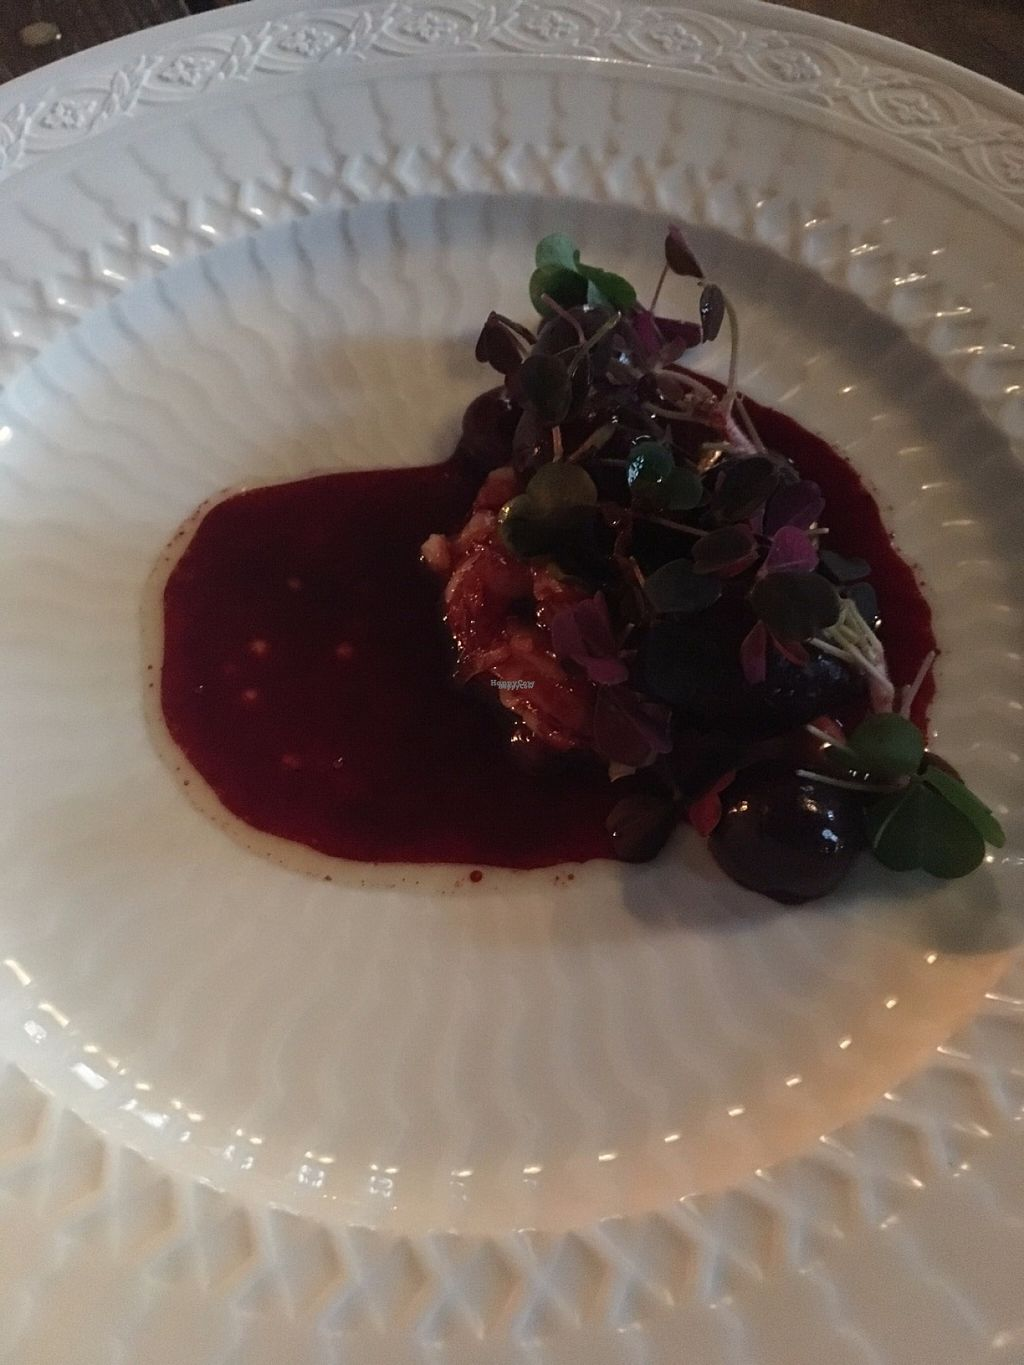 "Photo of Formel B  by <a href=""/members/profile/cuckooworld"">cuckooworld</a> <br/>Beetroot sauce with vegetables. Perhaps mashed potatos.  <br/> August 8, 2016  - <a href='/contact/abuse/image/77803/167016'>Report</a>"